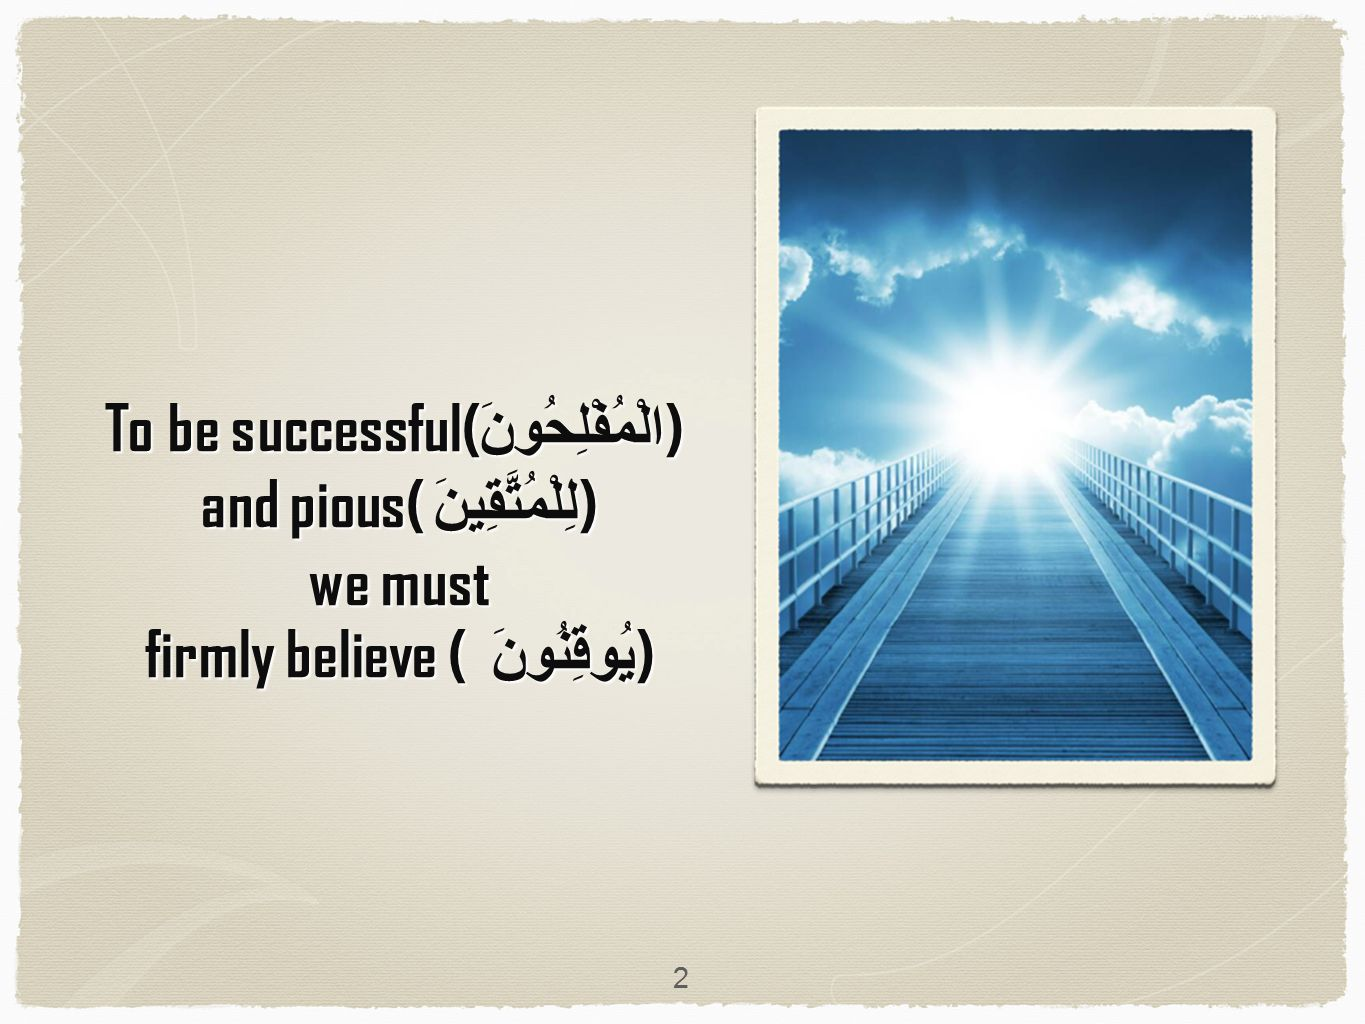 To be successful( الْمُفْلِحُونَ ) and pious( لِلْمُتَّقِينَ ) we must firmly believe ( يُوقِنُونَ ) 2